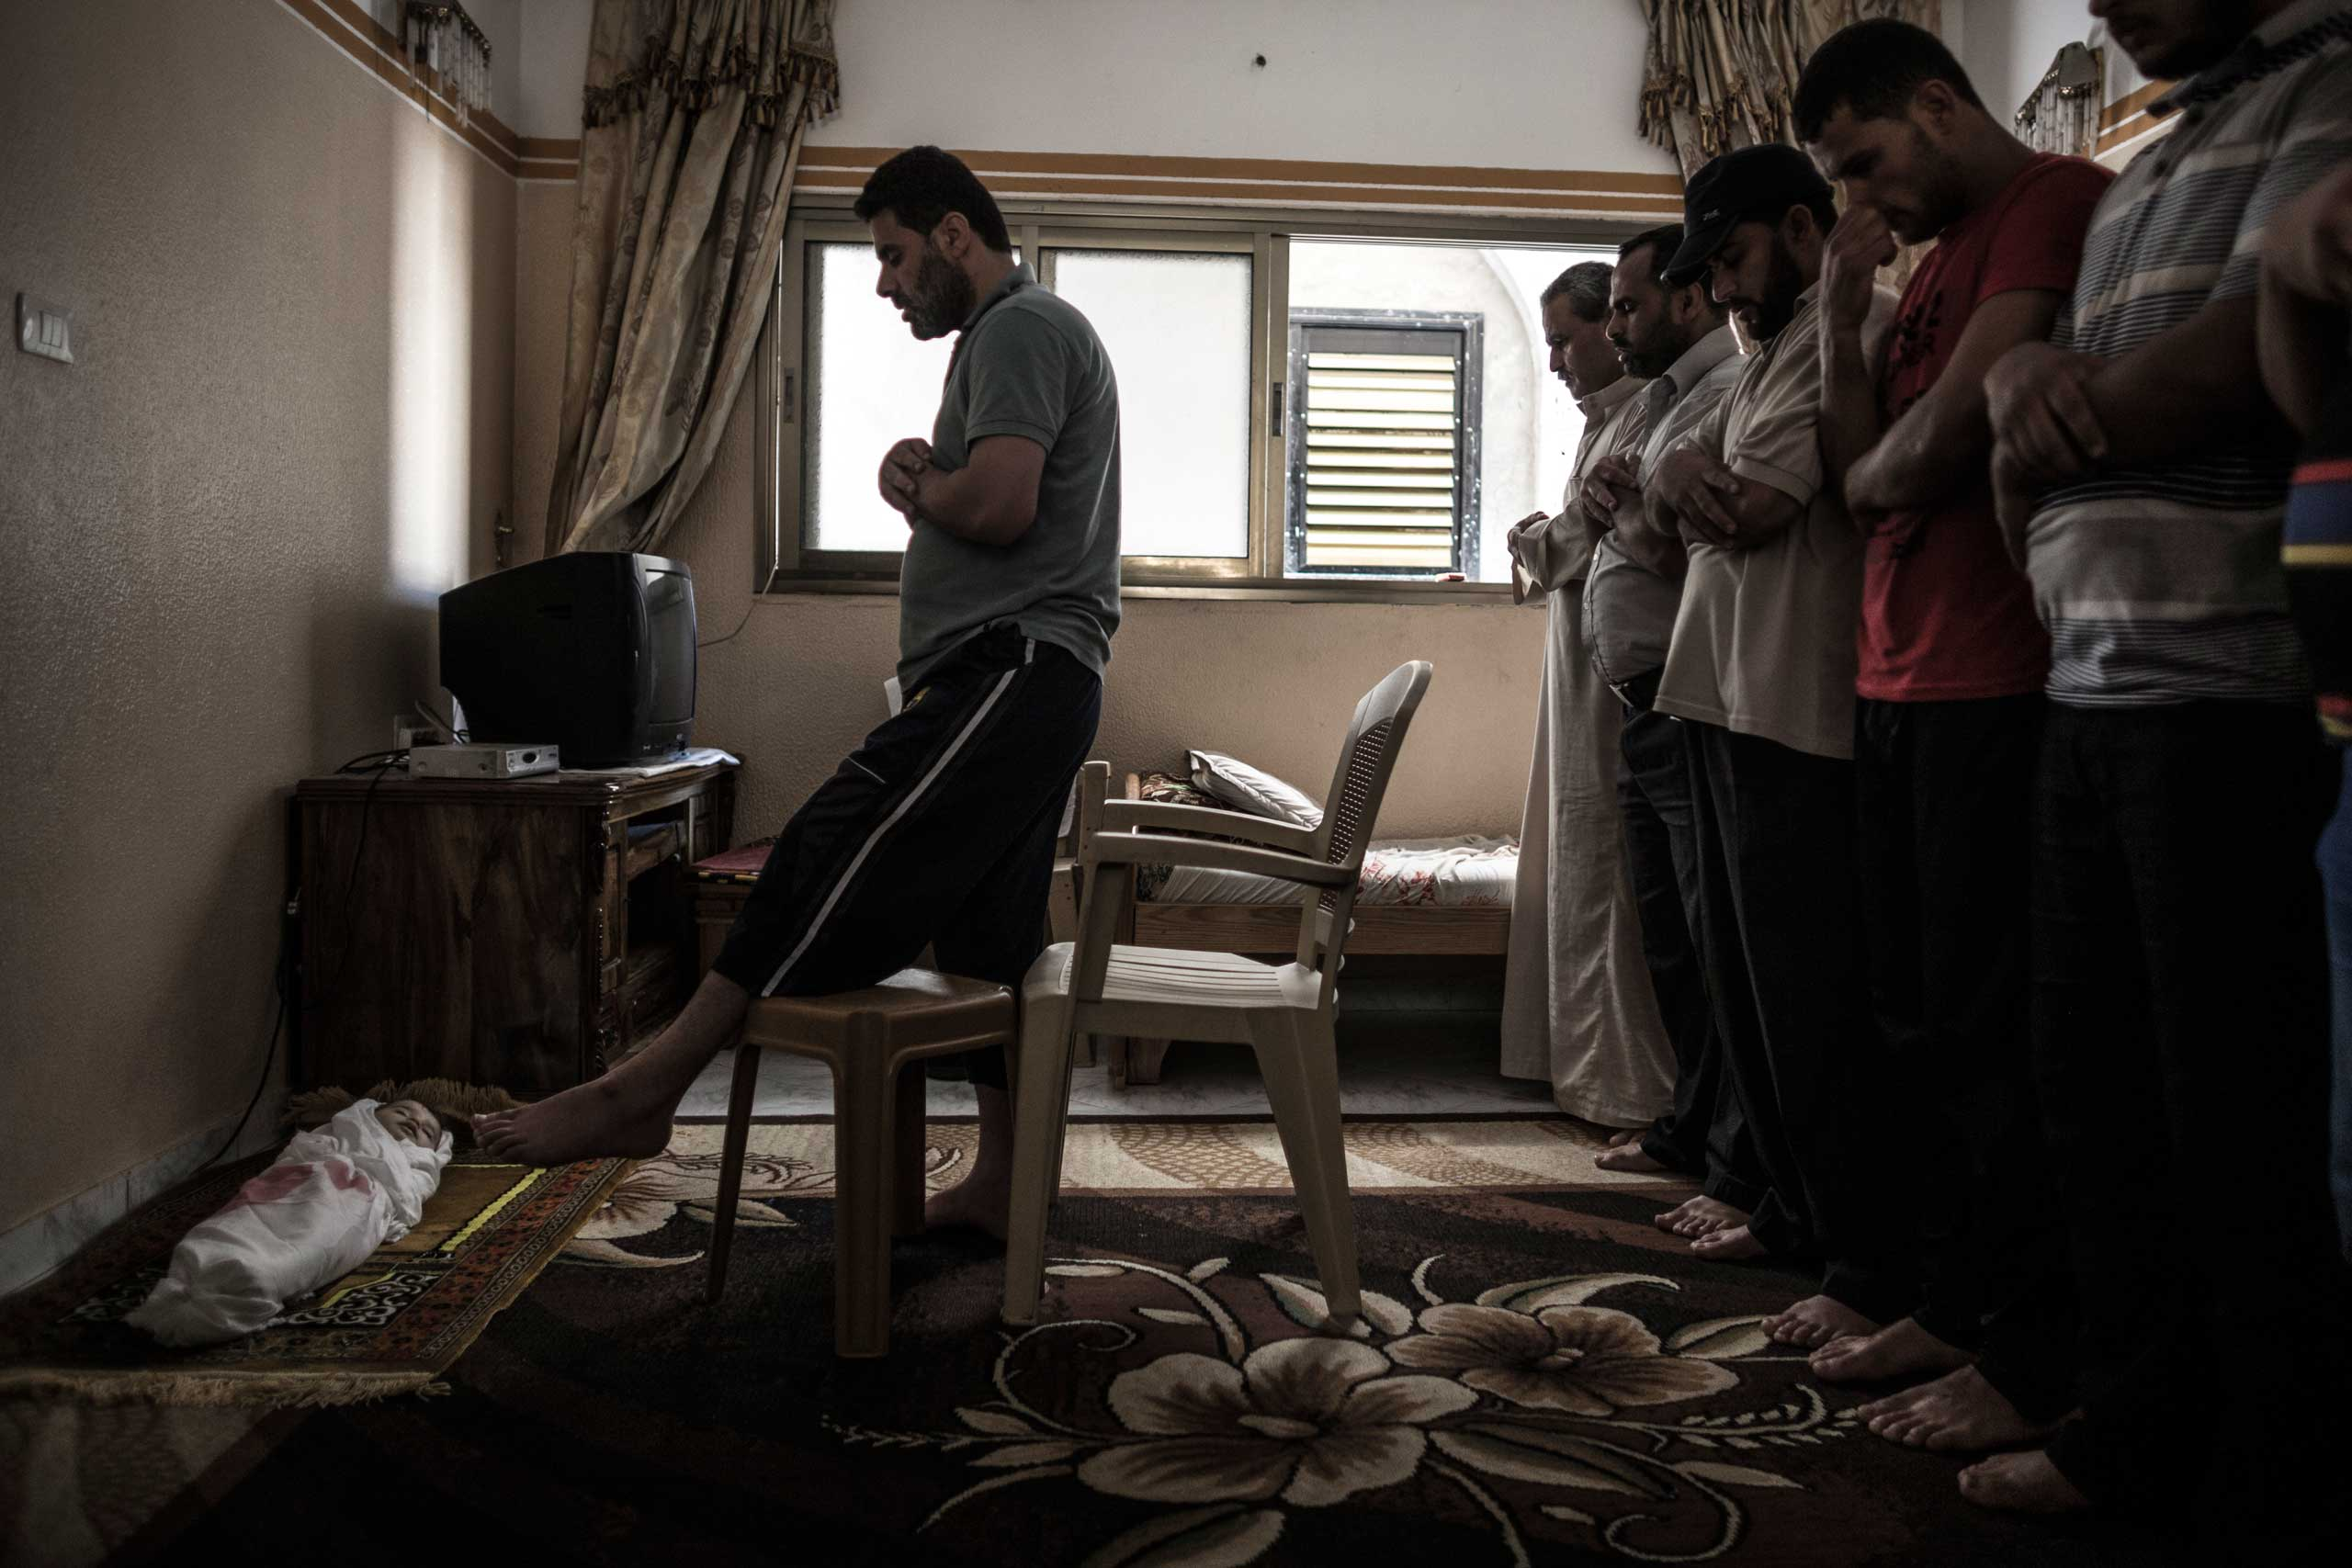 Relatives pray in front of the body of Razel, 1, during her funeral in Khan Younis, central Gaza Strip, July 18, 2014.